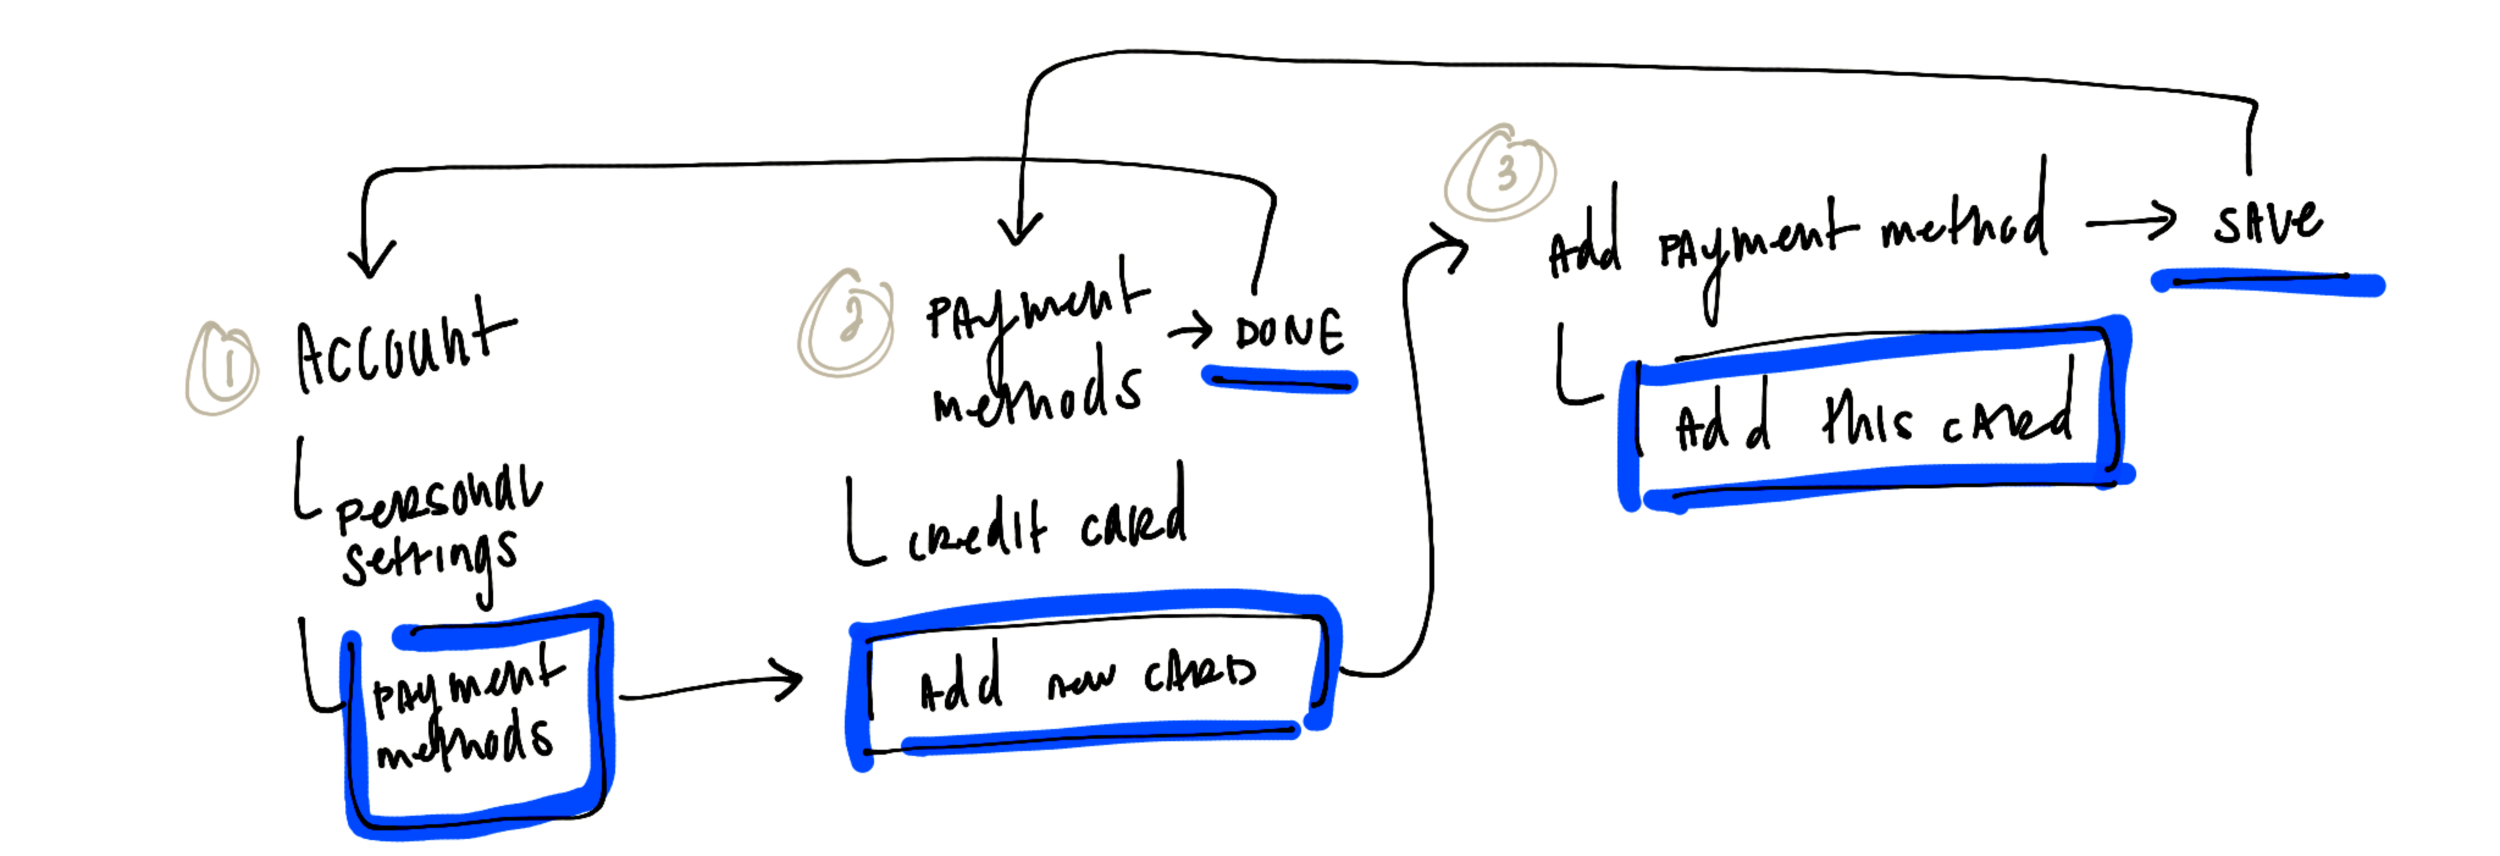 uxflow-2.png